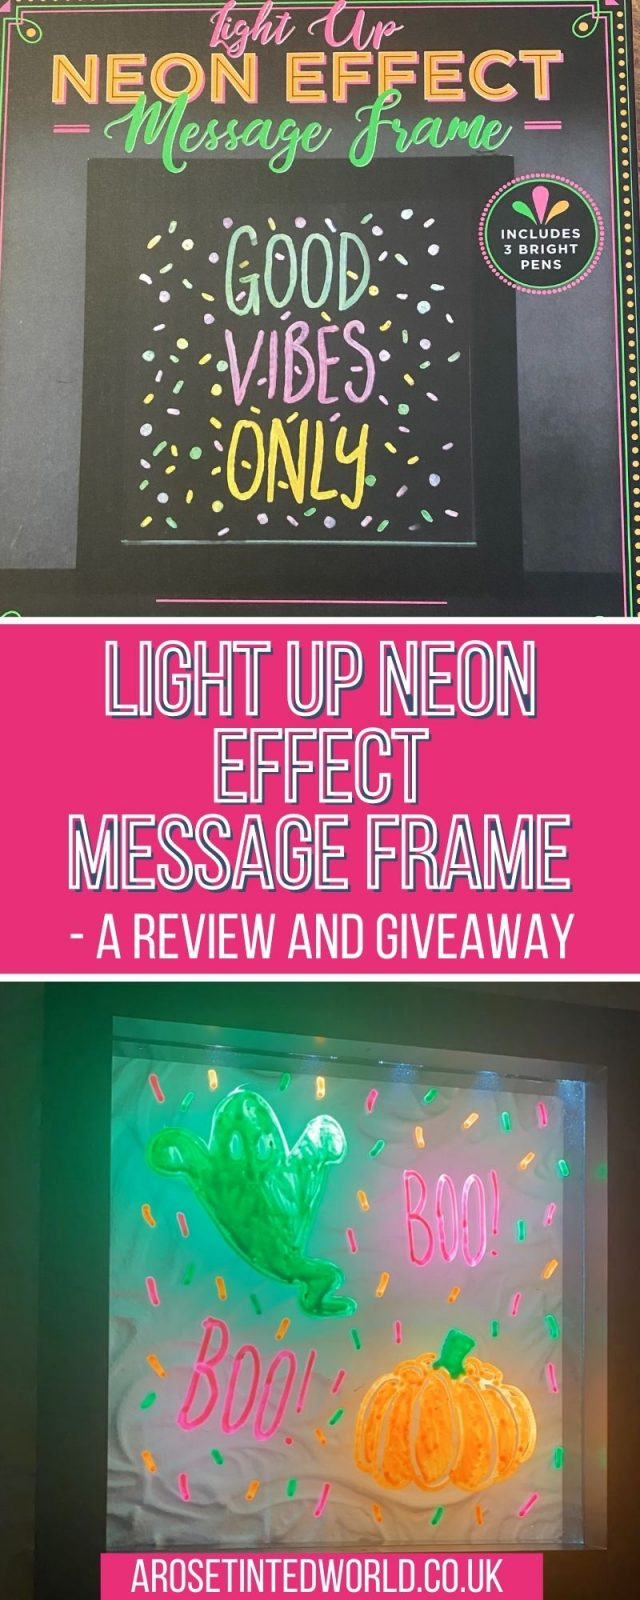 Light Up Neon Effect Message Frame - I was asked to review this fun gift idea. What can this board be used for? See what I thought.